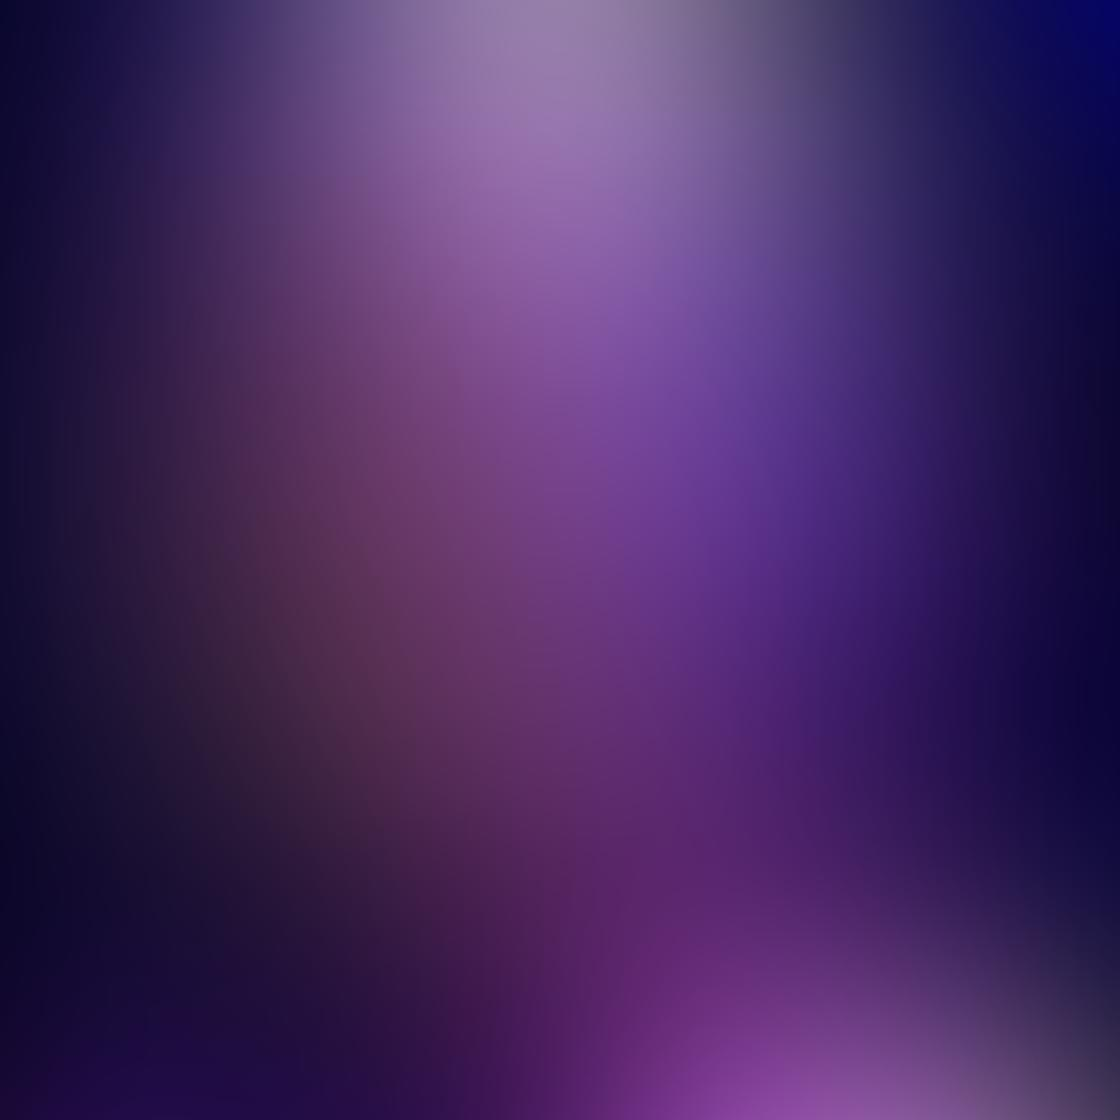 Abstract Portrait iPhone Photos 15